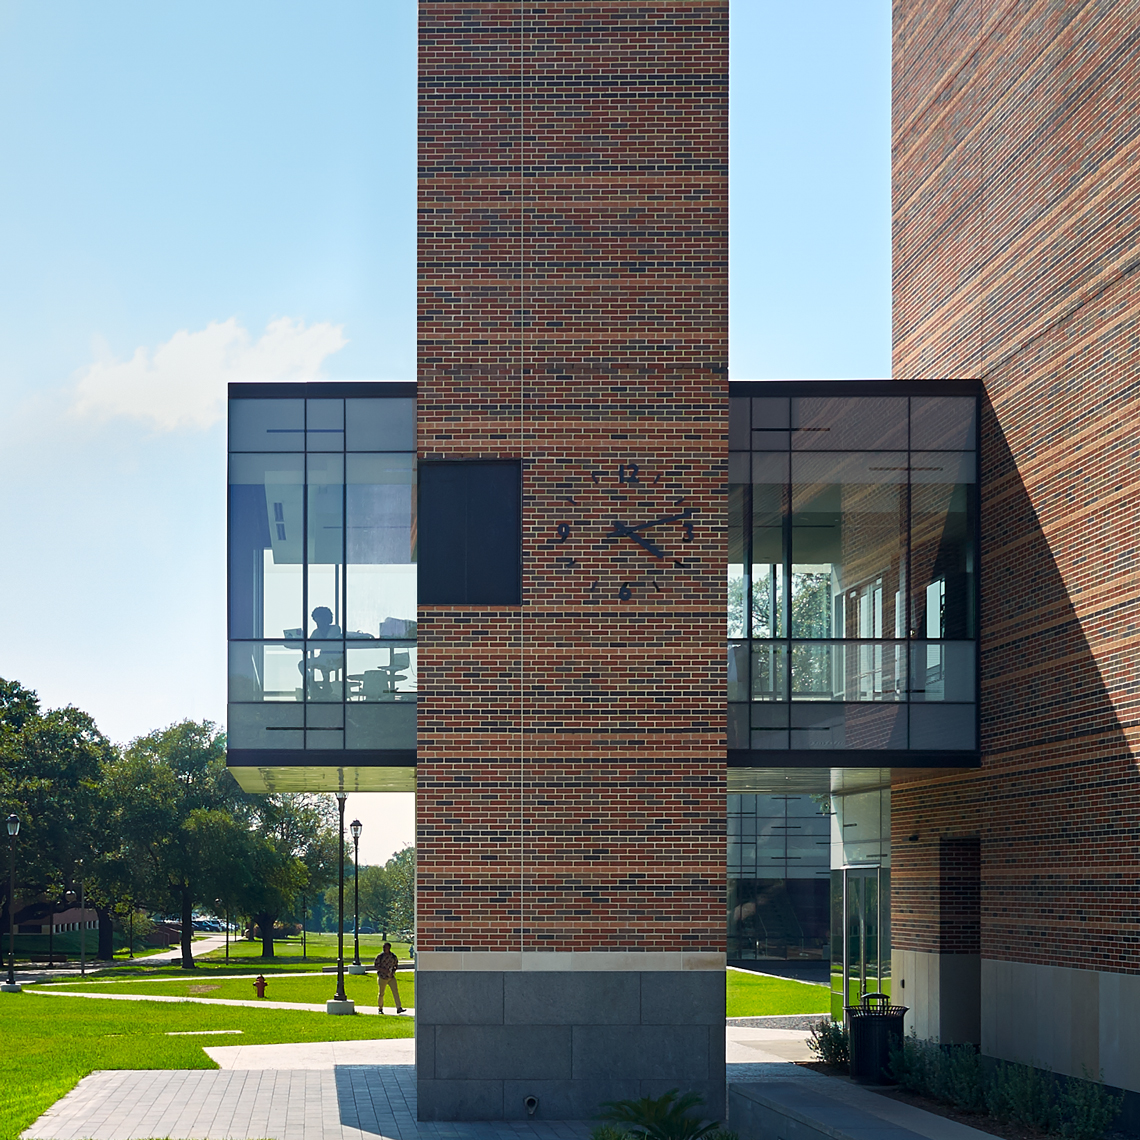 Dror Baldinger FAIA architectural photography at agriculture and business school pvamu